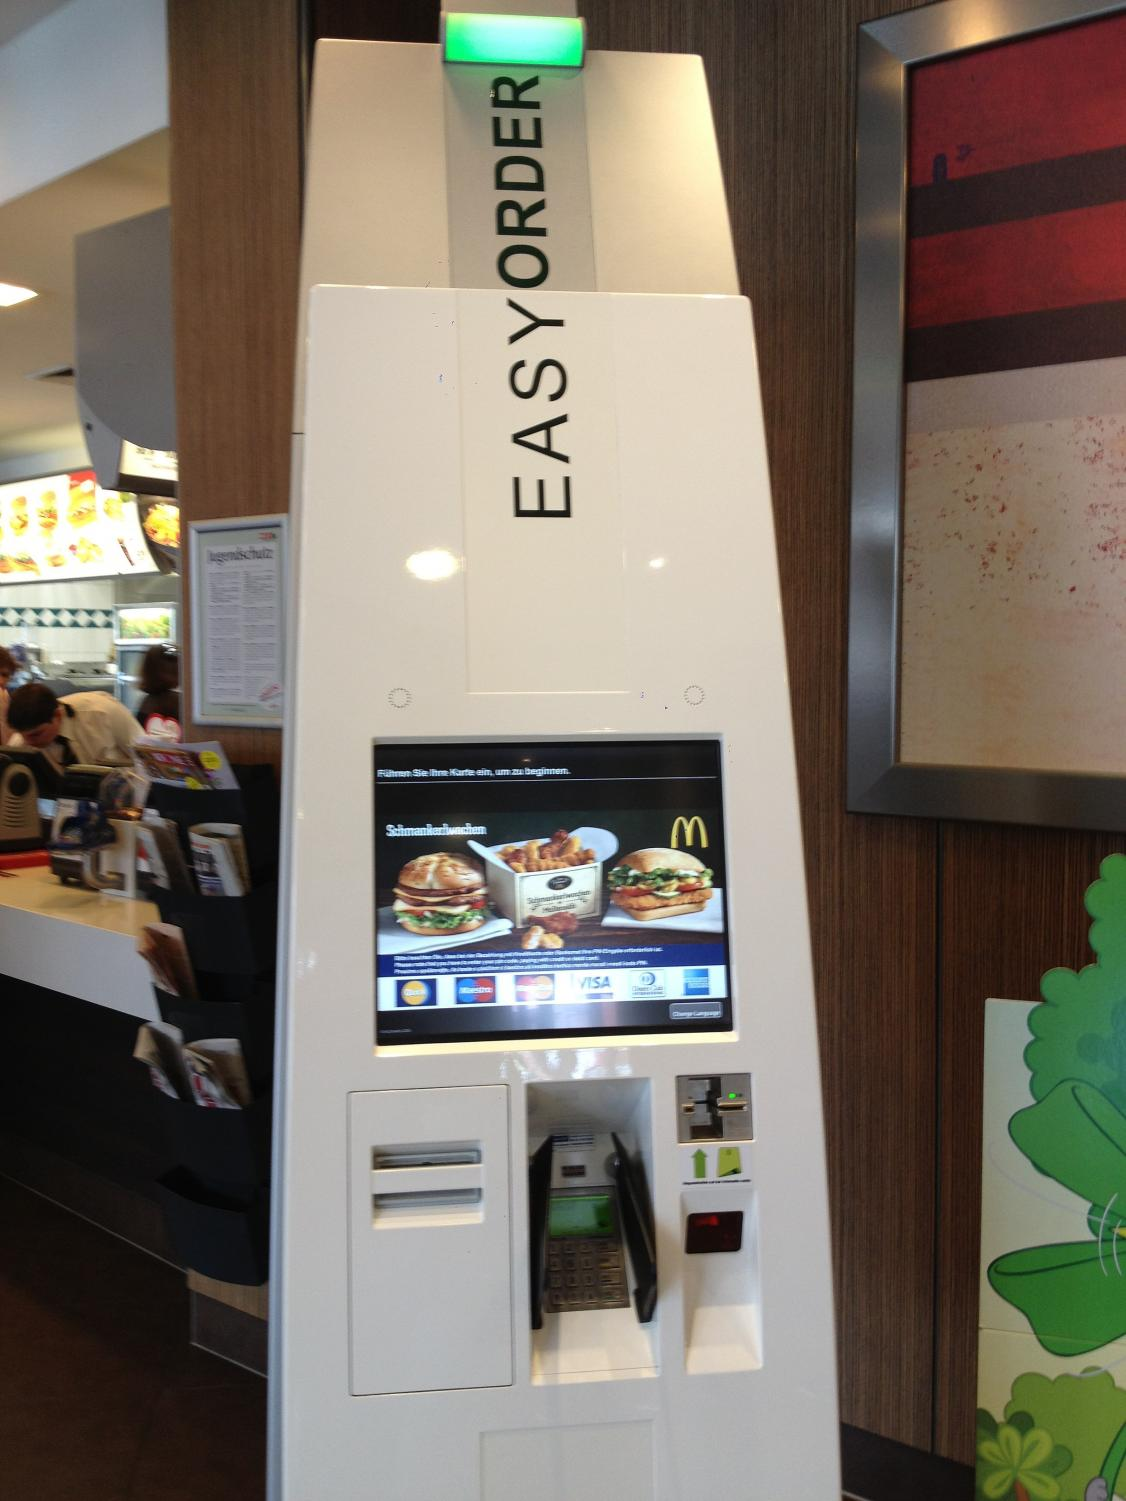 McDonald's Payment Machine https://creativecommons.org/licenses/by/3.0/deed.en